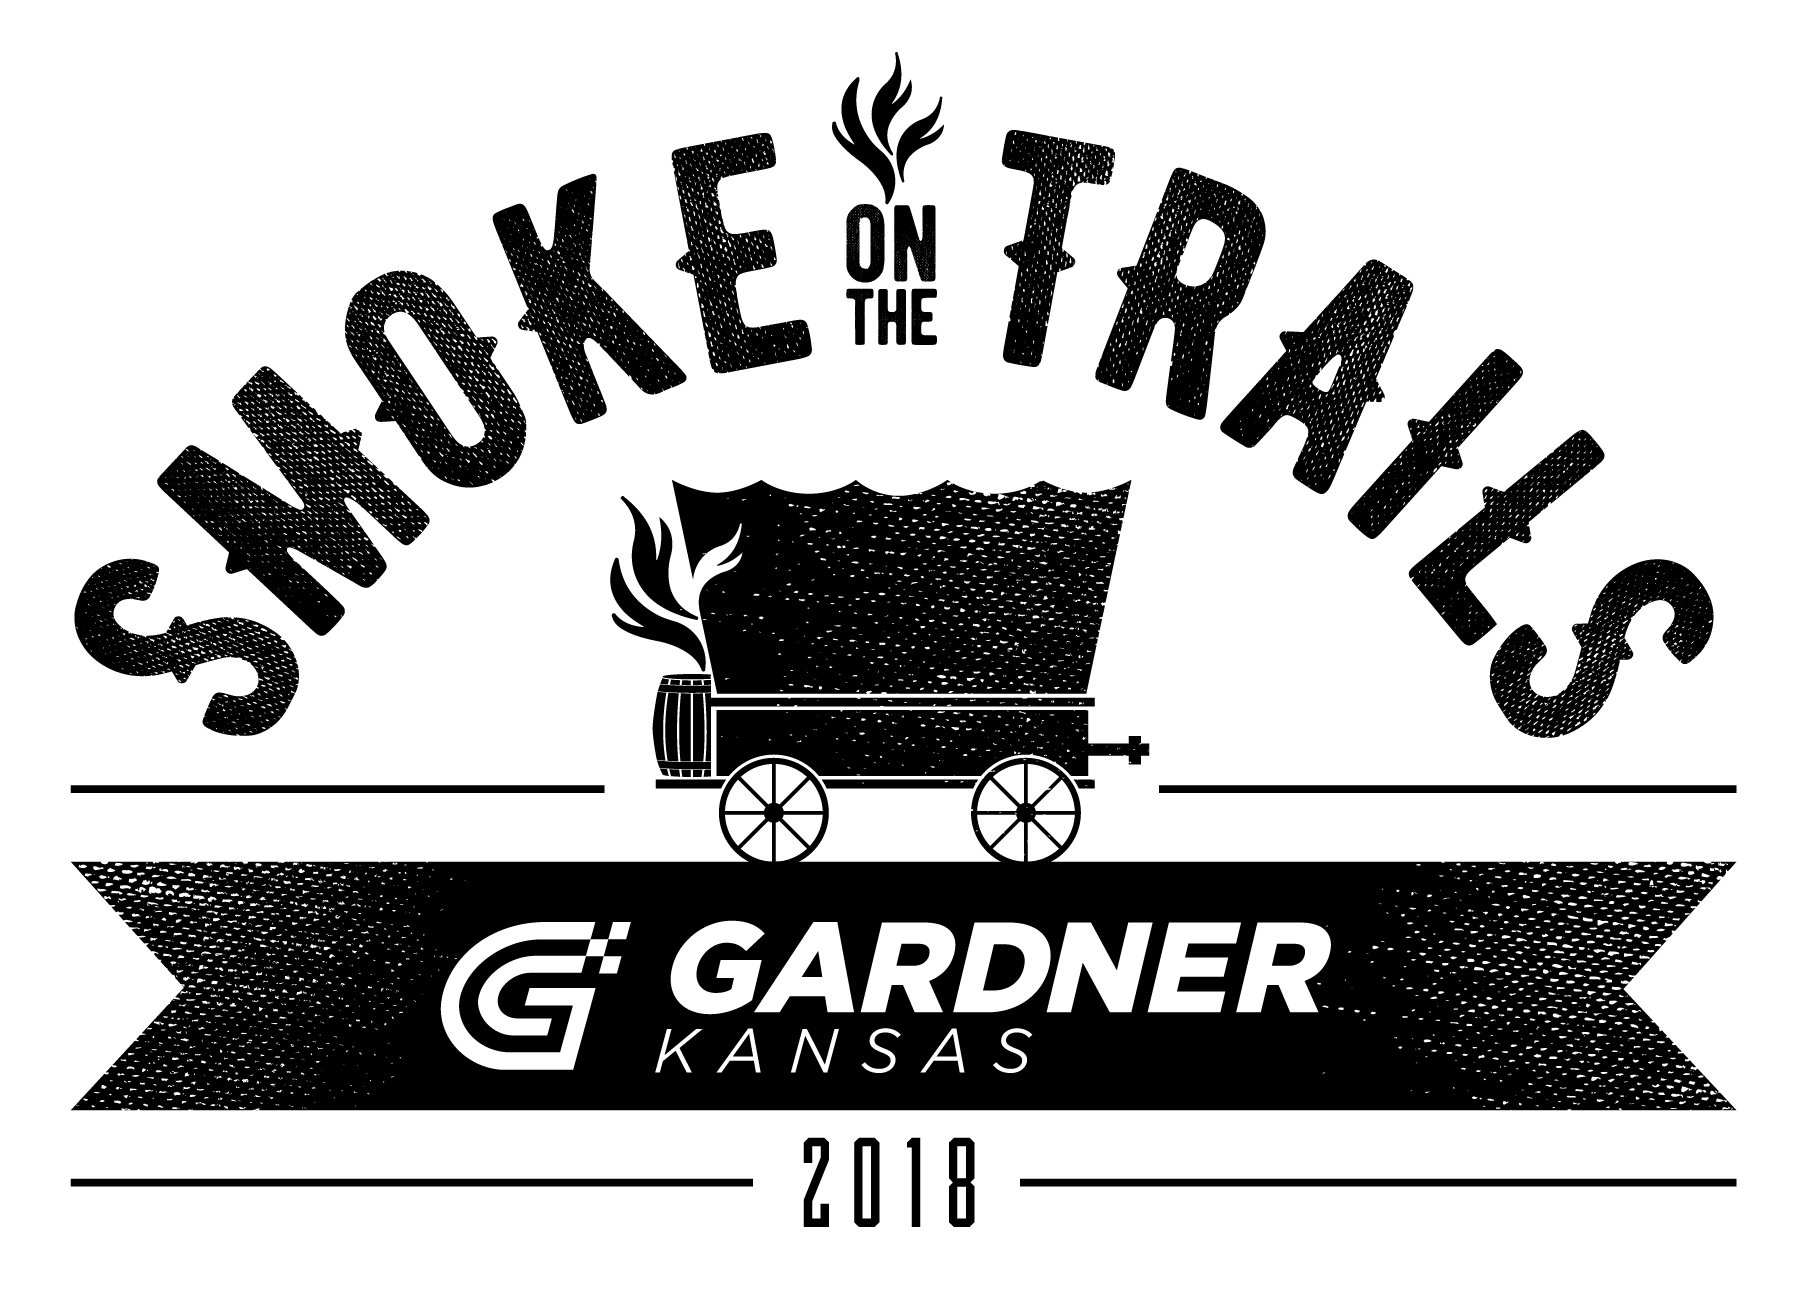 smoke on the trails logo cropped